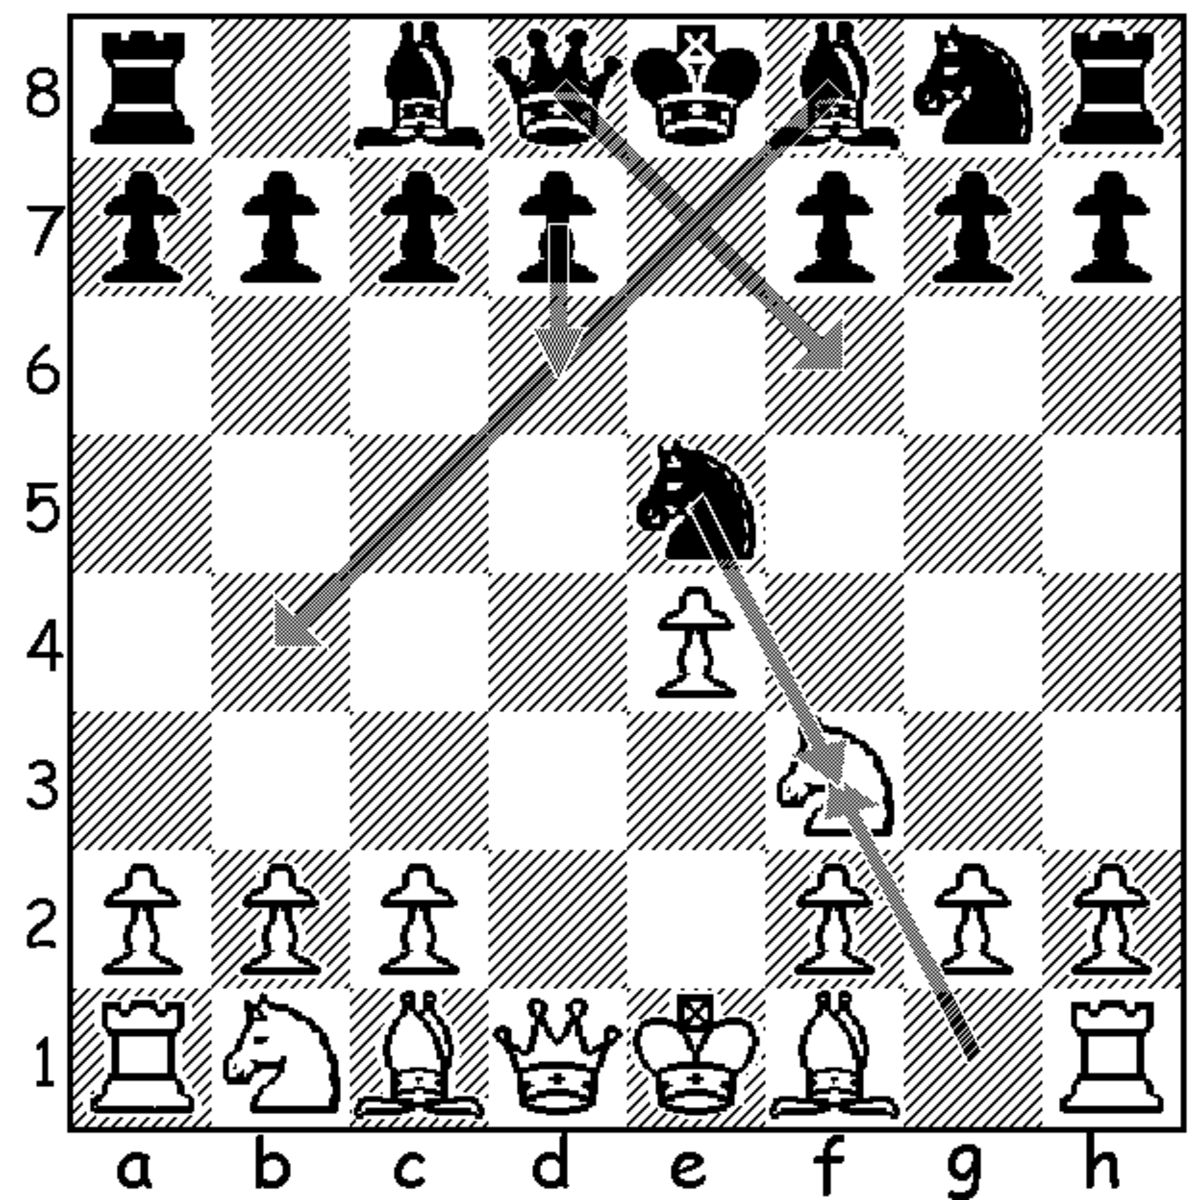 This diagram shows black's four most common fourth move responses to white's 4.Nf4. In order of popularity, they are, 4...Nxf3, 4...Bb4+, 4...Qf3, and 4...d6.